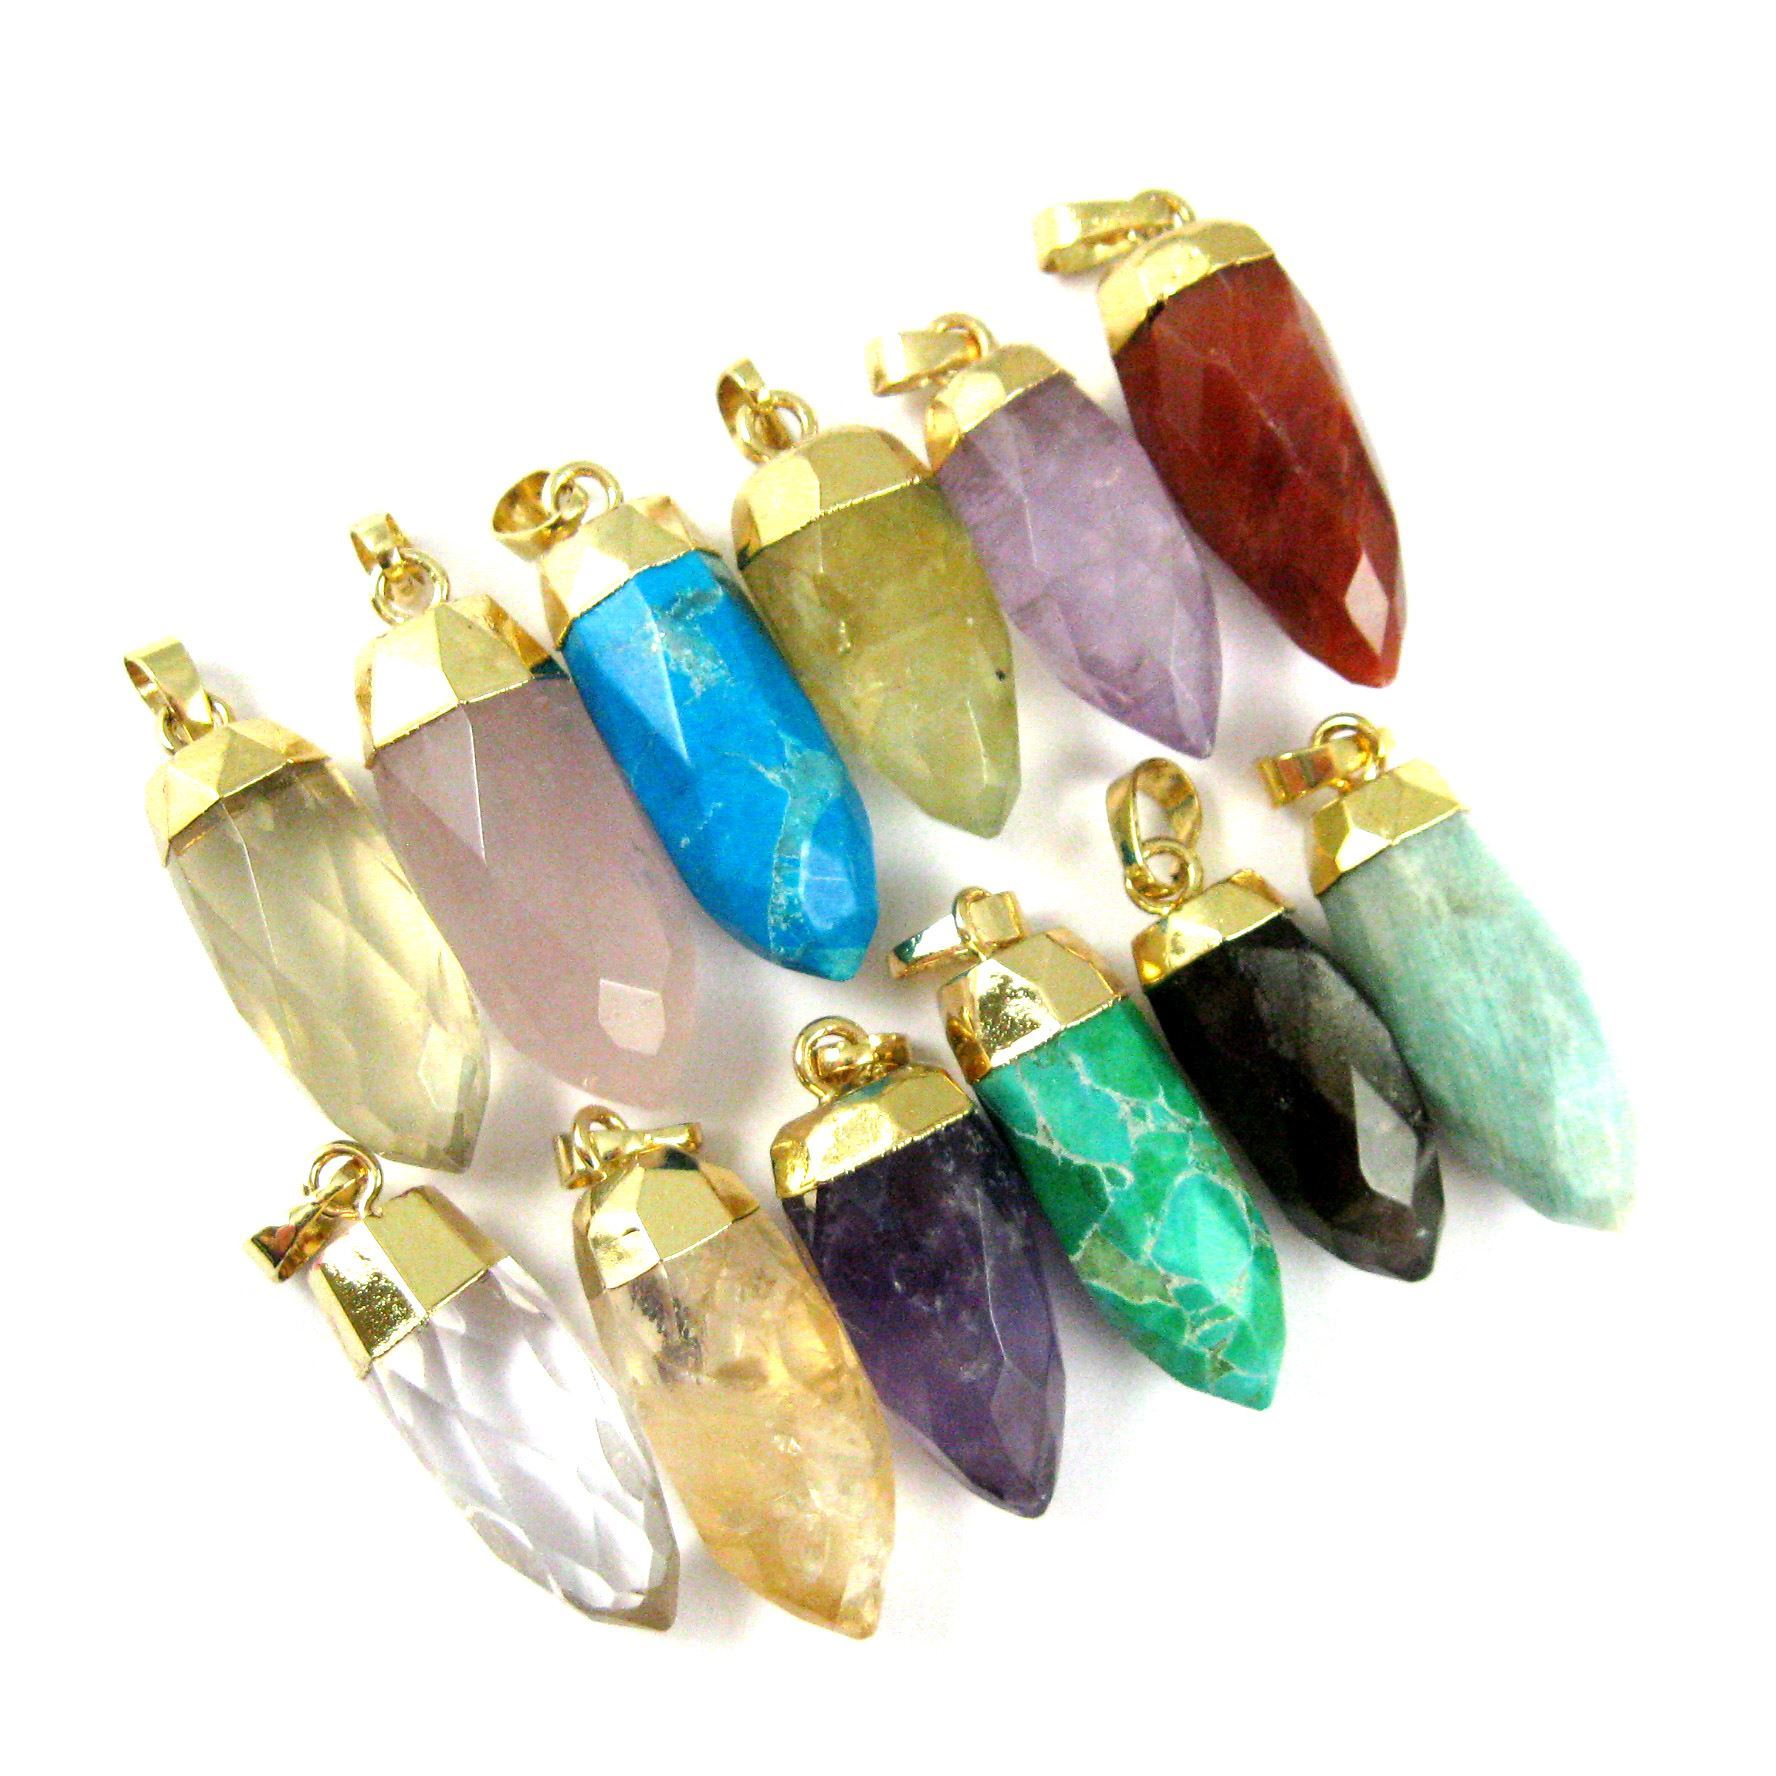 Gemstone Spike Pendant, Faceted Druzy Spike Pendant, Crystal Pendant with Gold plated Bail- 30mm